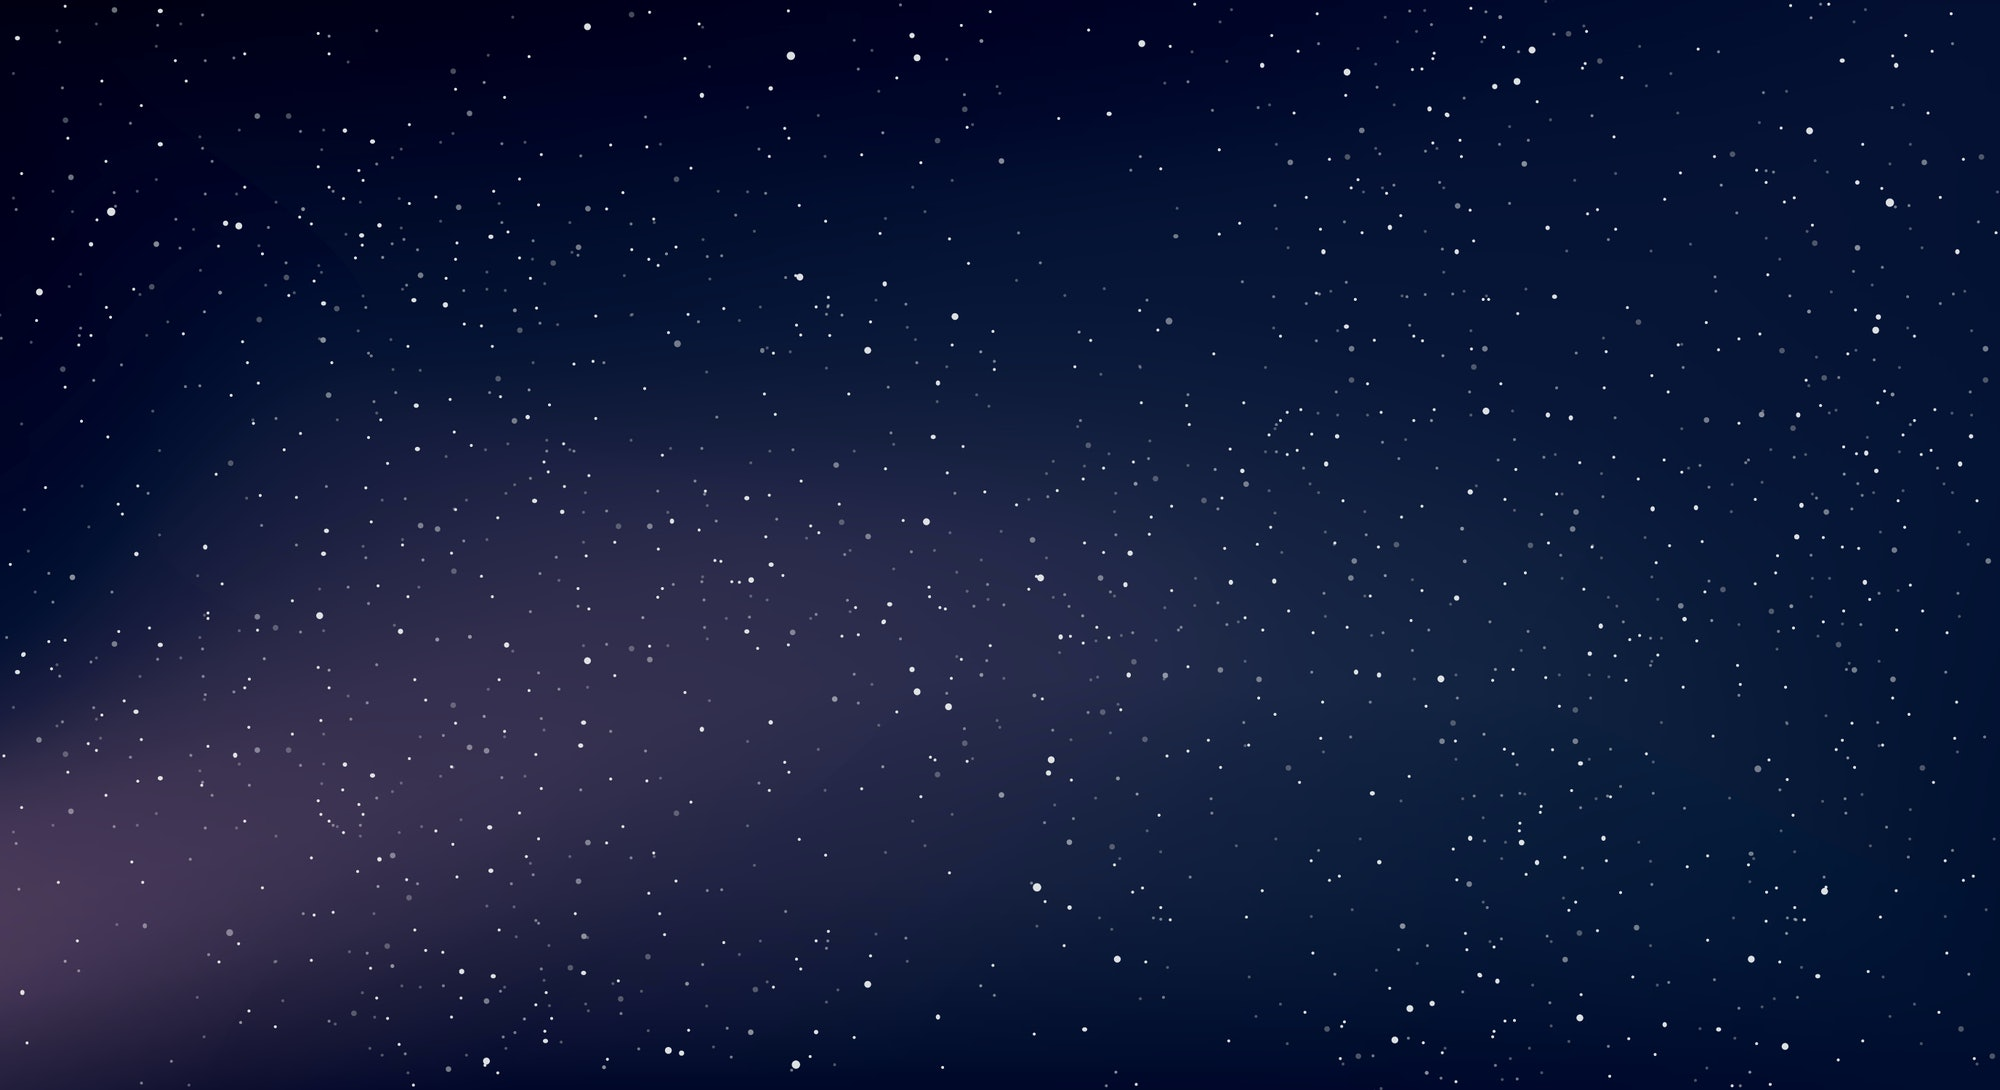 Space stars background, Abstract background, Starry space vector backdrop, Galaxies, Milky way galax...